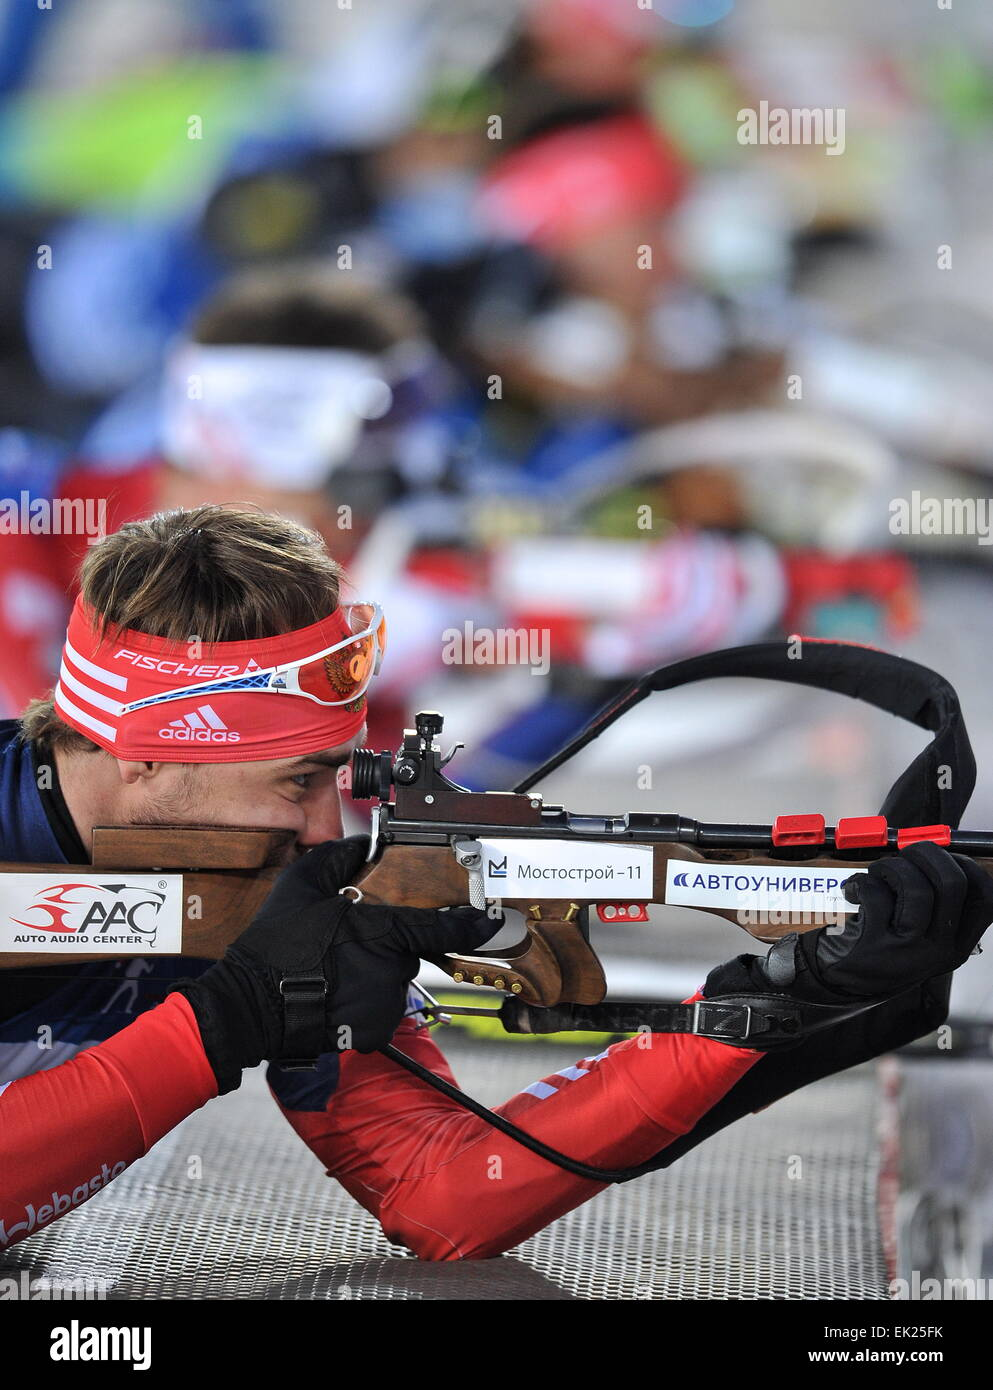 Tyumen, Russia. 4th Apr, 2014. Russia's Anton Shipolin competes in a mixed relay race at the 2015 Biathlon Champions - Stock Image